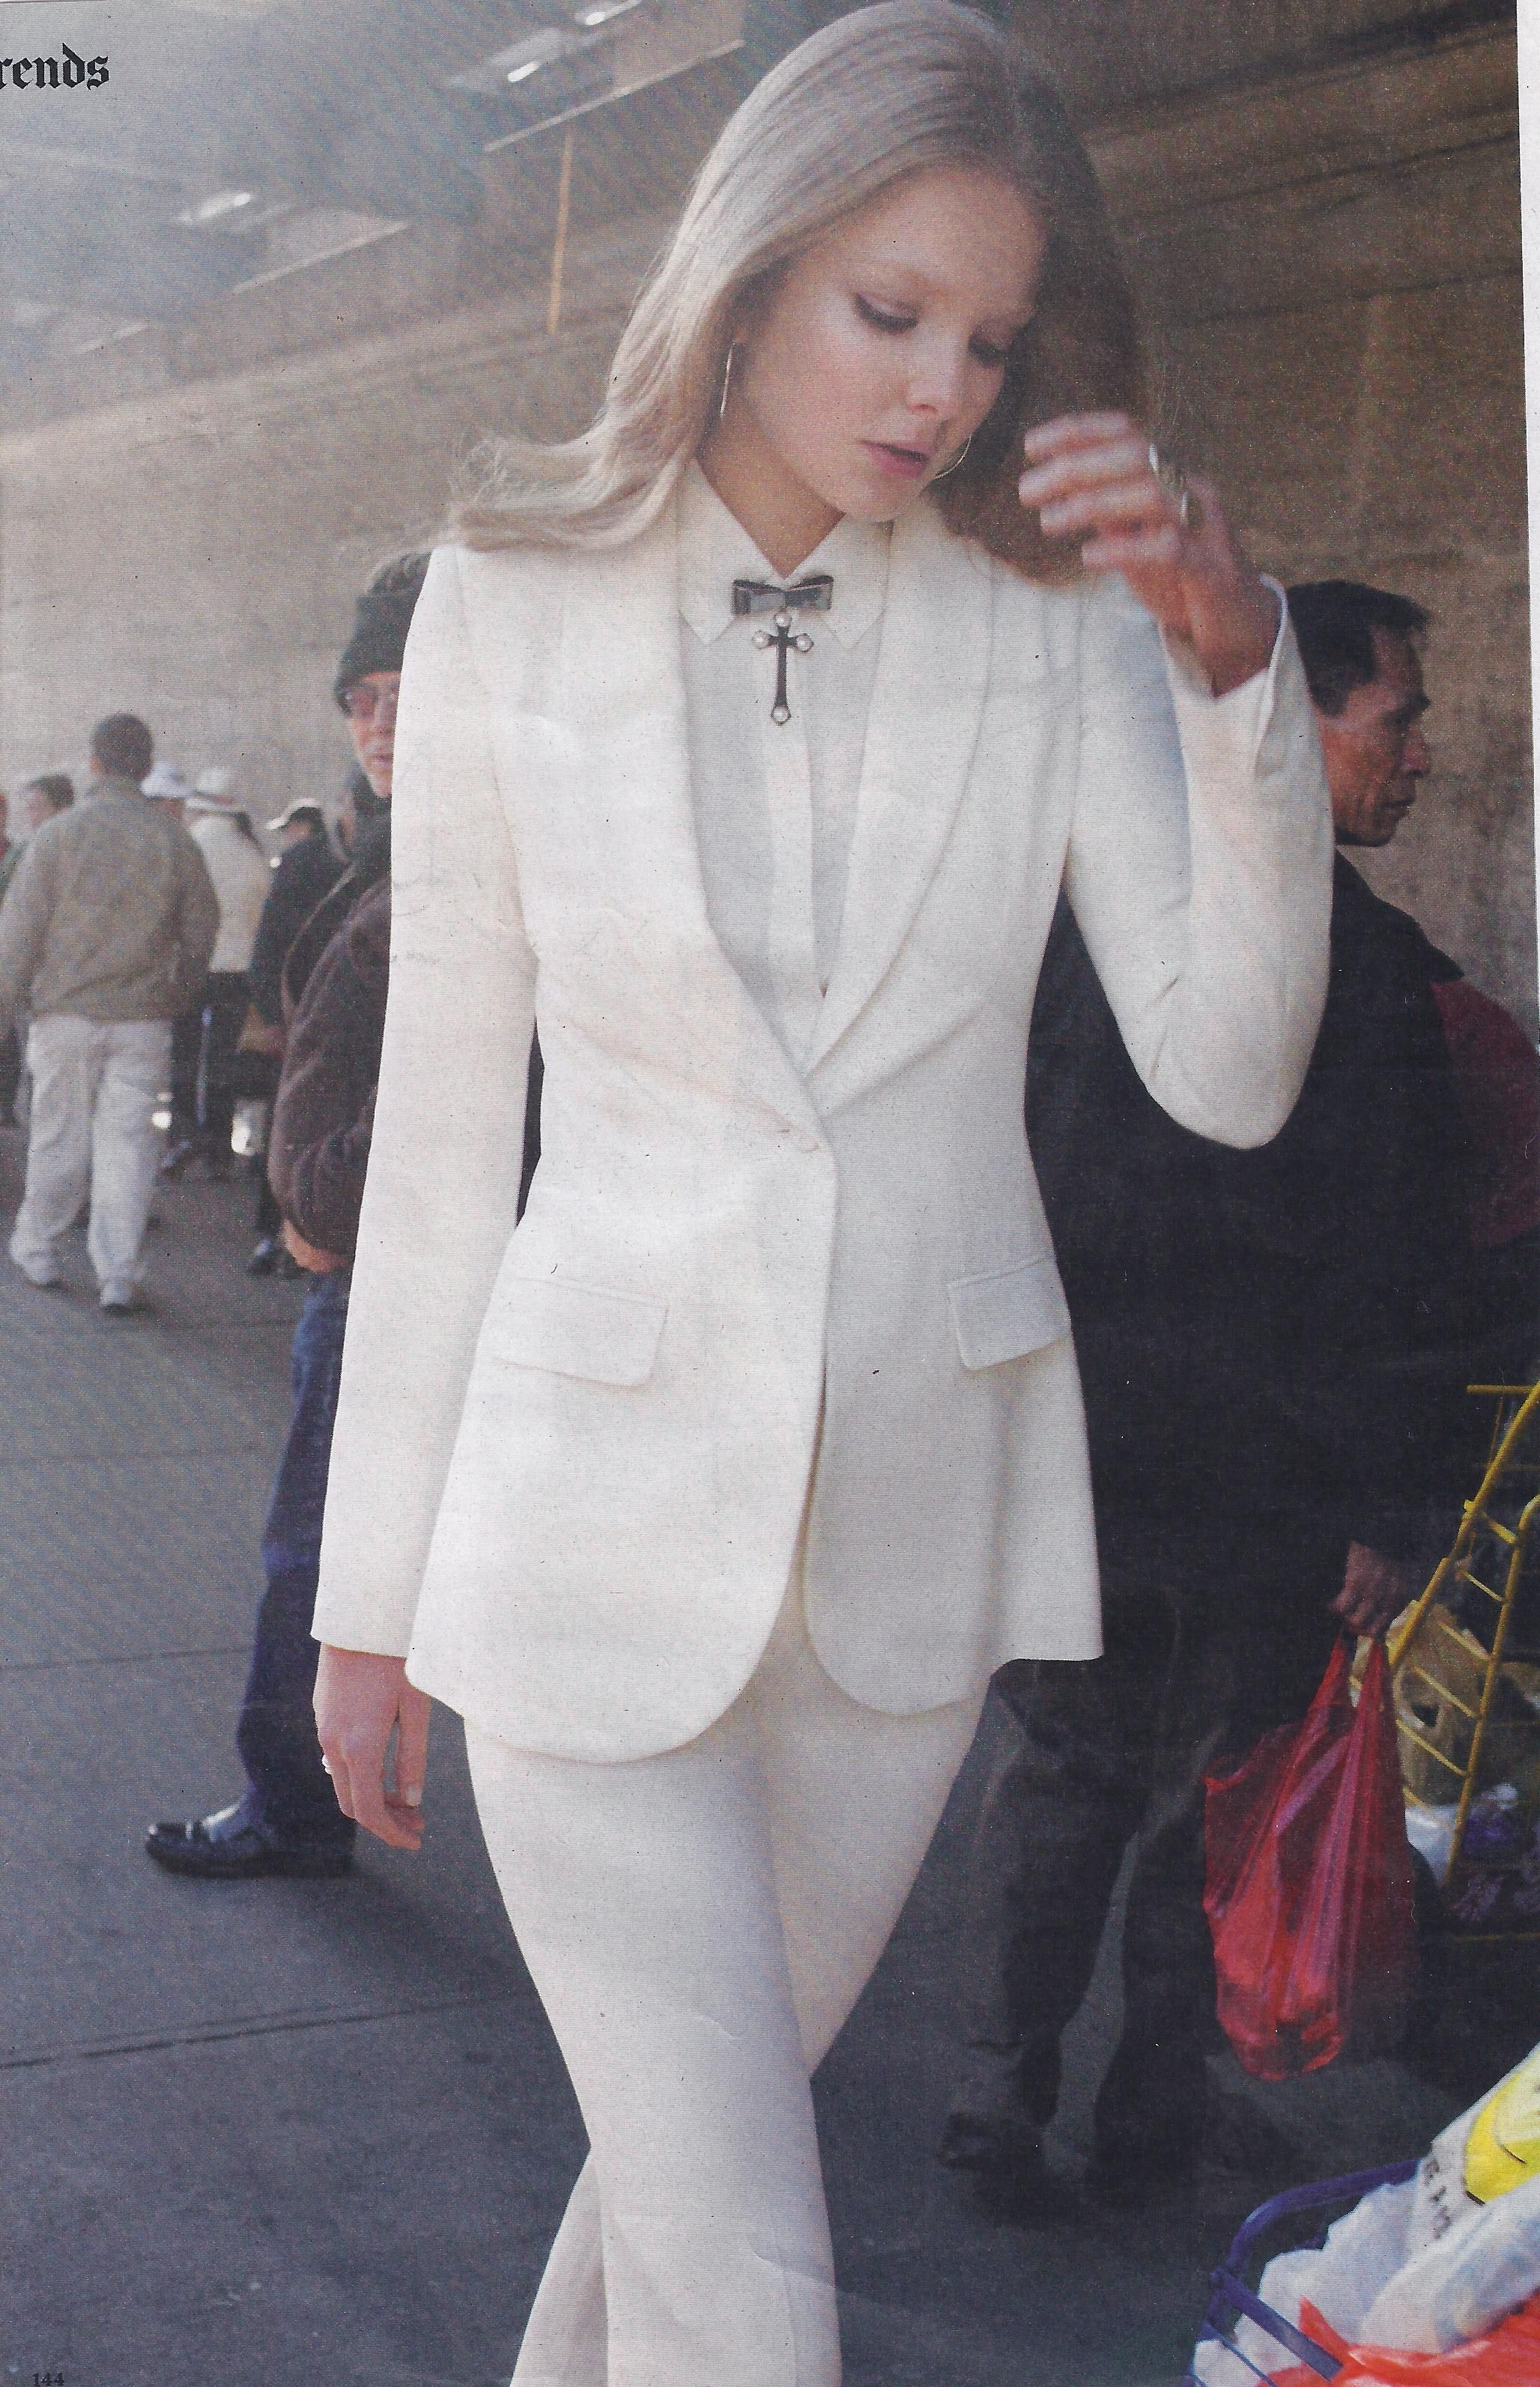 Pin By Kelsey Stratton On My Style My Life Women Suits Wedding Pantsuits For Women Trendy Suits